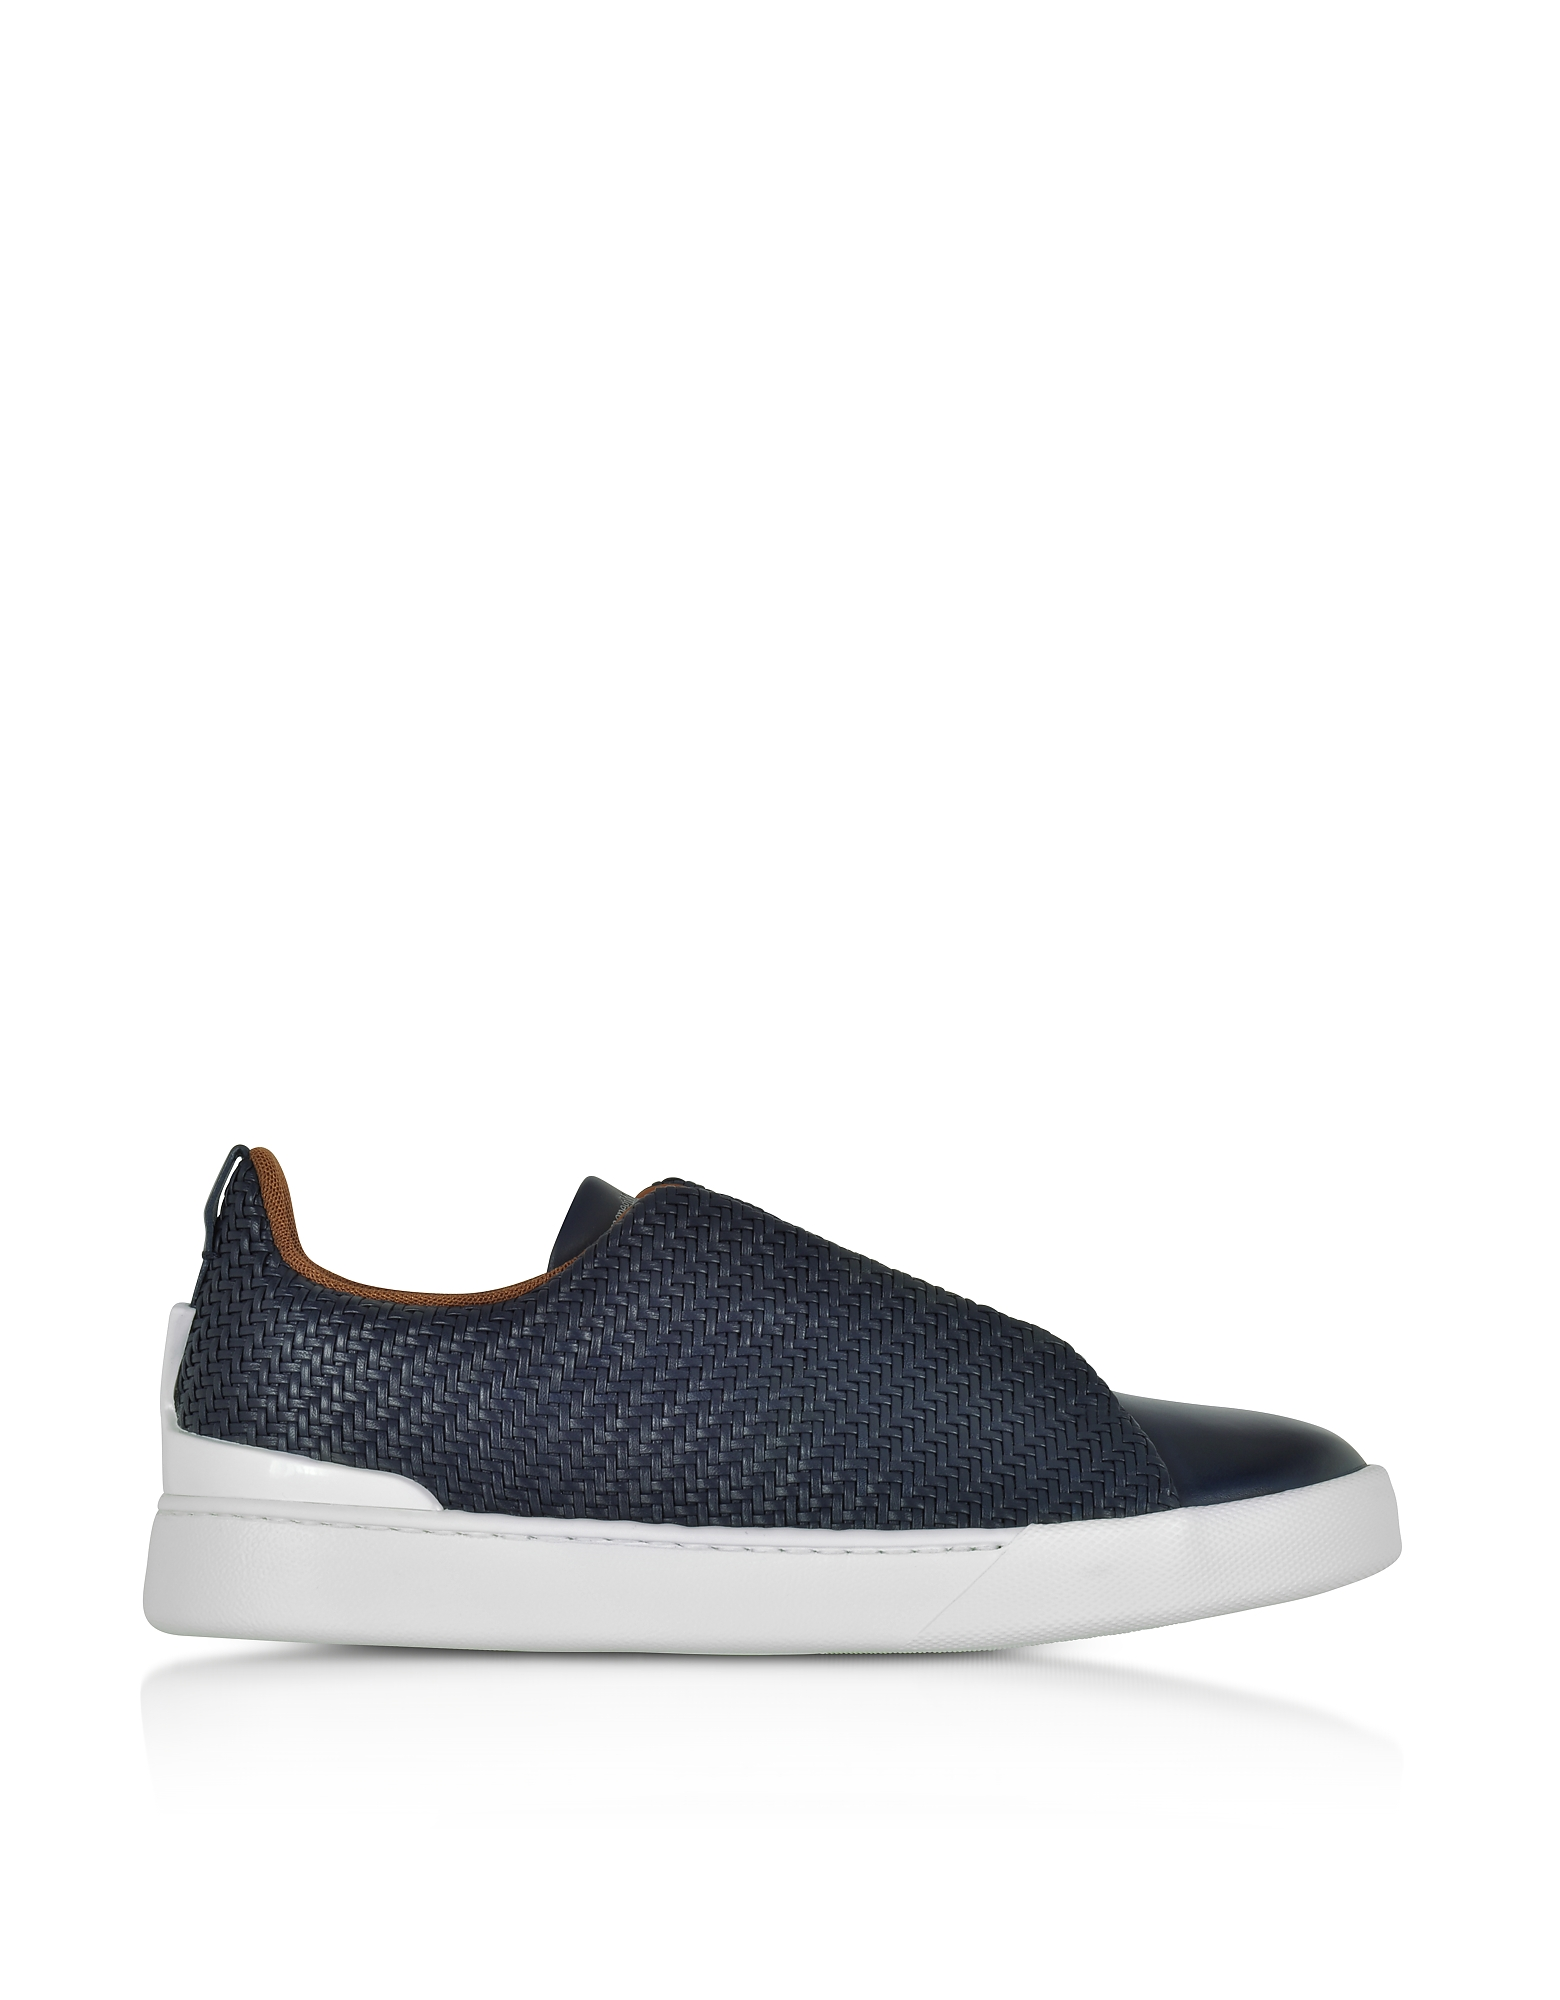 Ermenegildo Zegna Shoes, Deep Blue Triple Stitch Woven Leather Low Top Sneakers